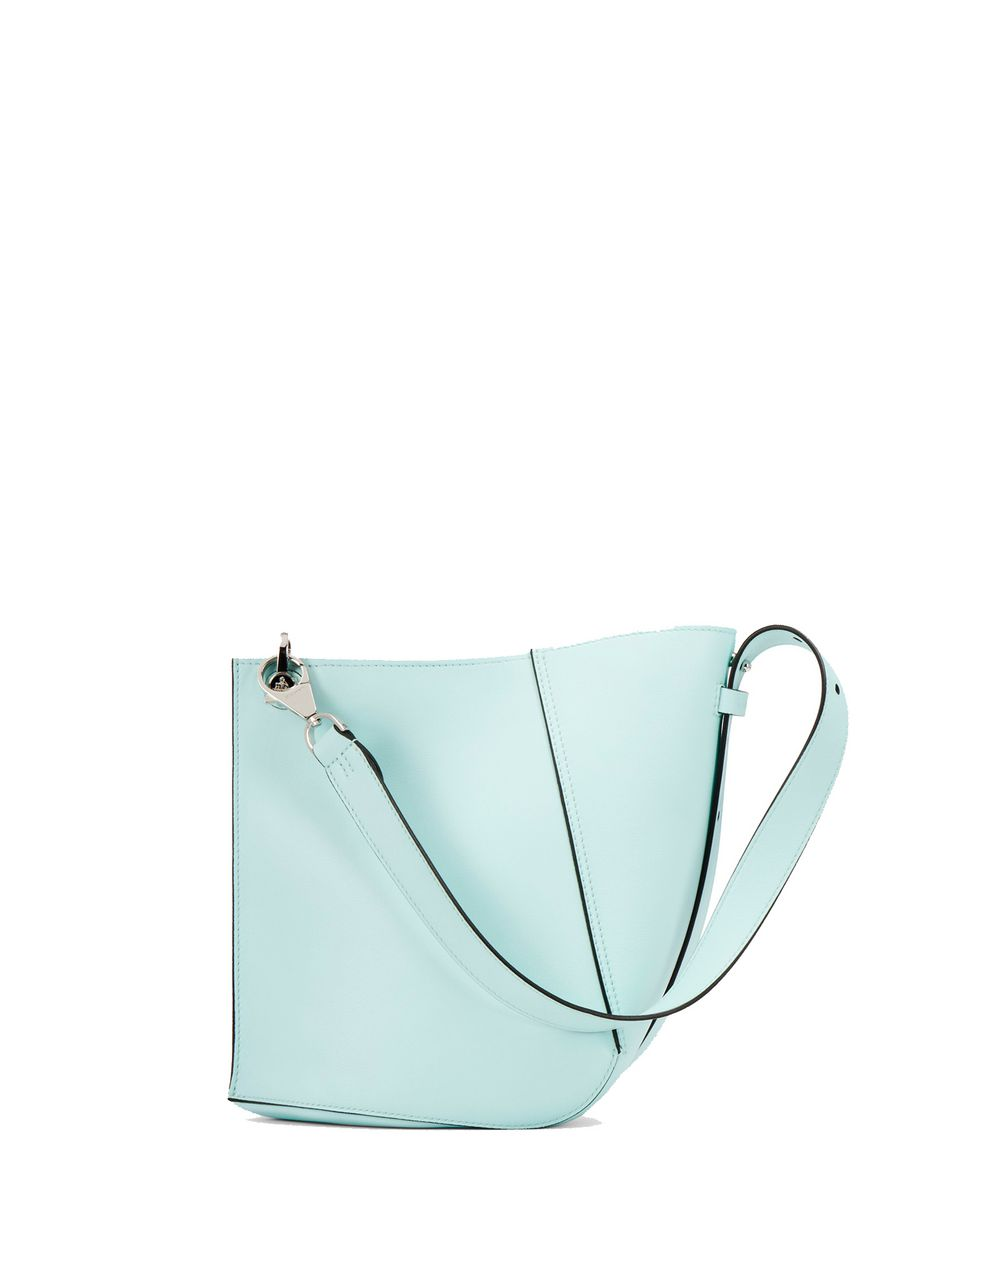 SMALL LANVIN BLUE HOOK BAG - Lanvin